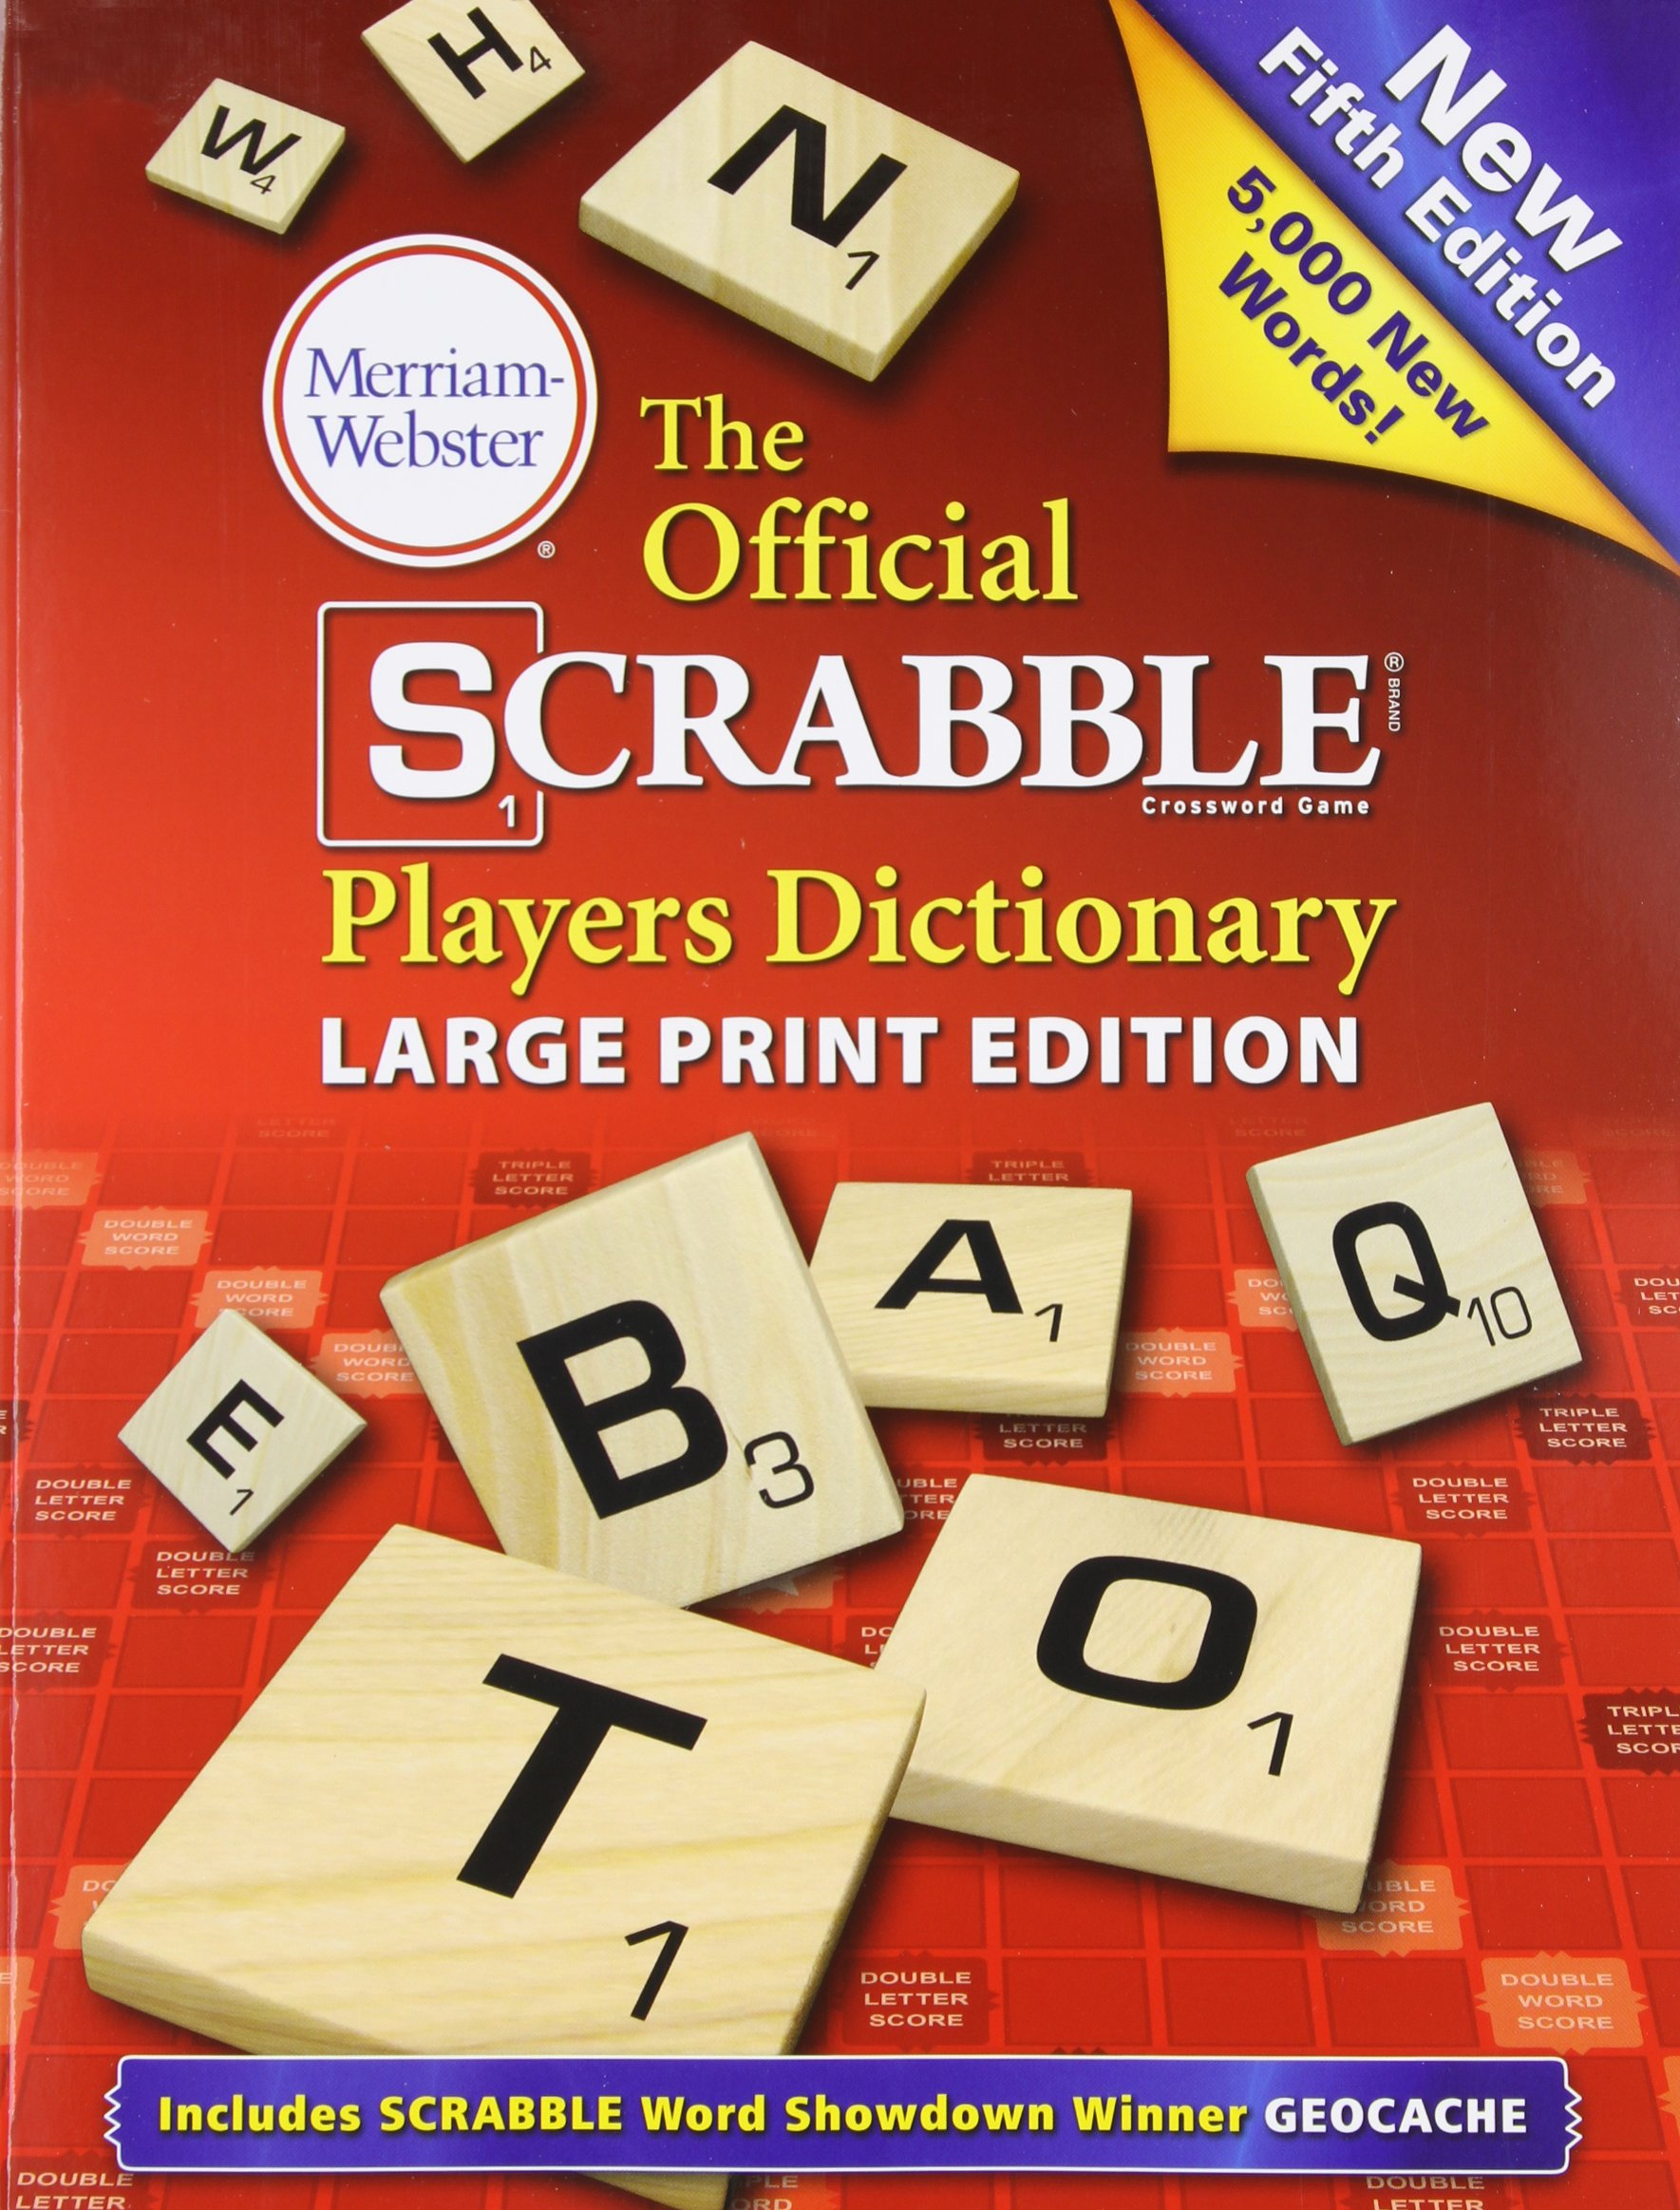 The Official Scrabble Players Dictionary Large Print Edition